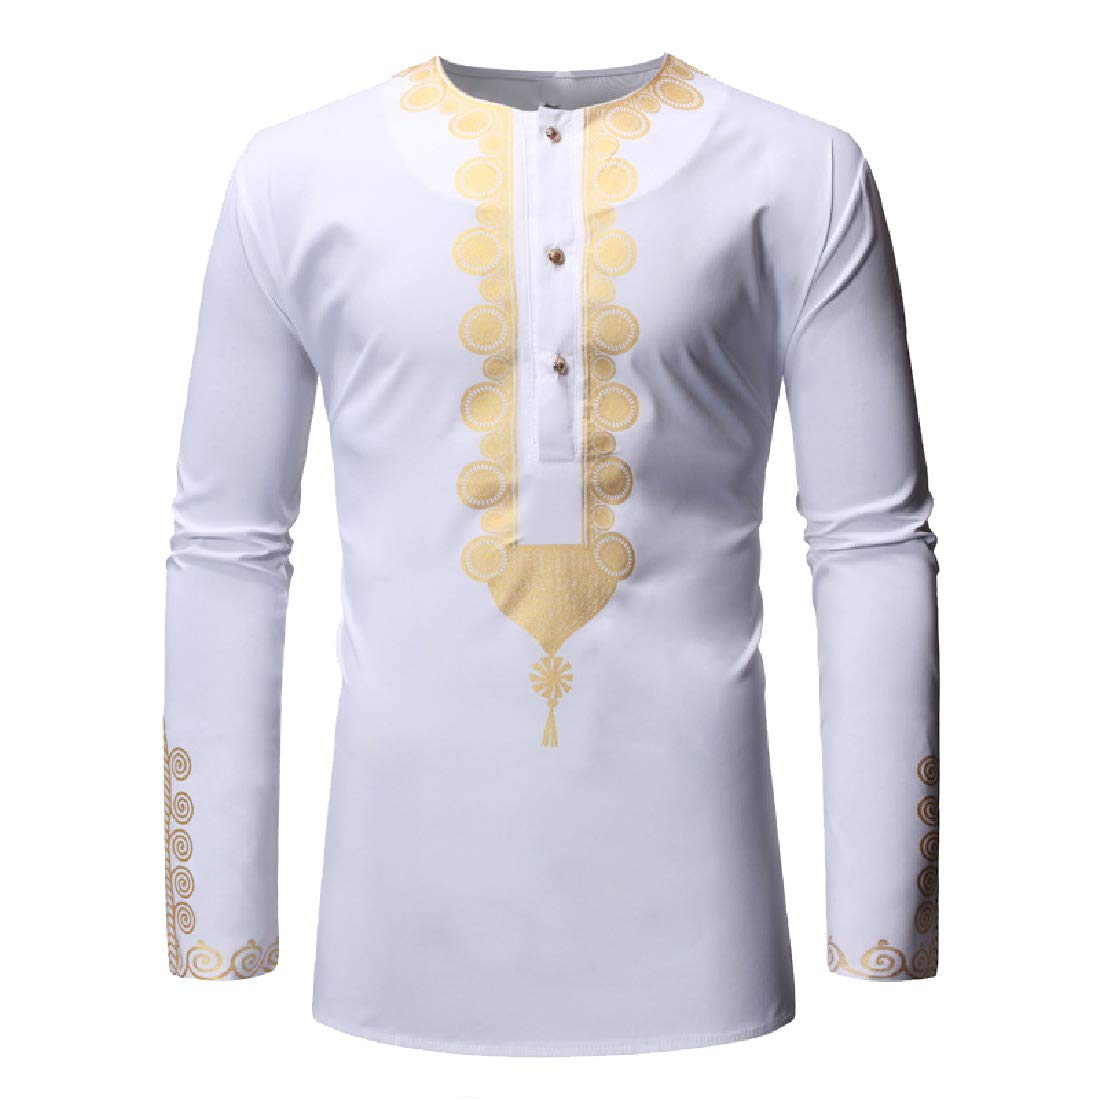 Zimaes-Men Floral Print Button Down Relaxed-Fit African Long-Sleeve Shirts